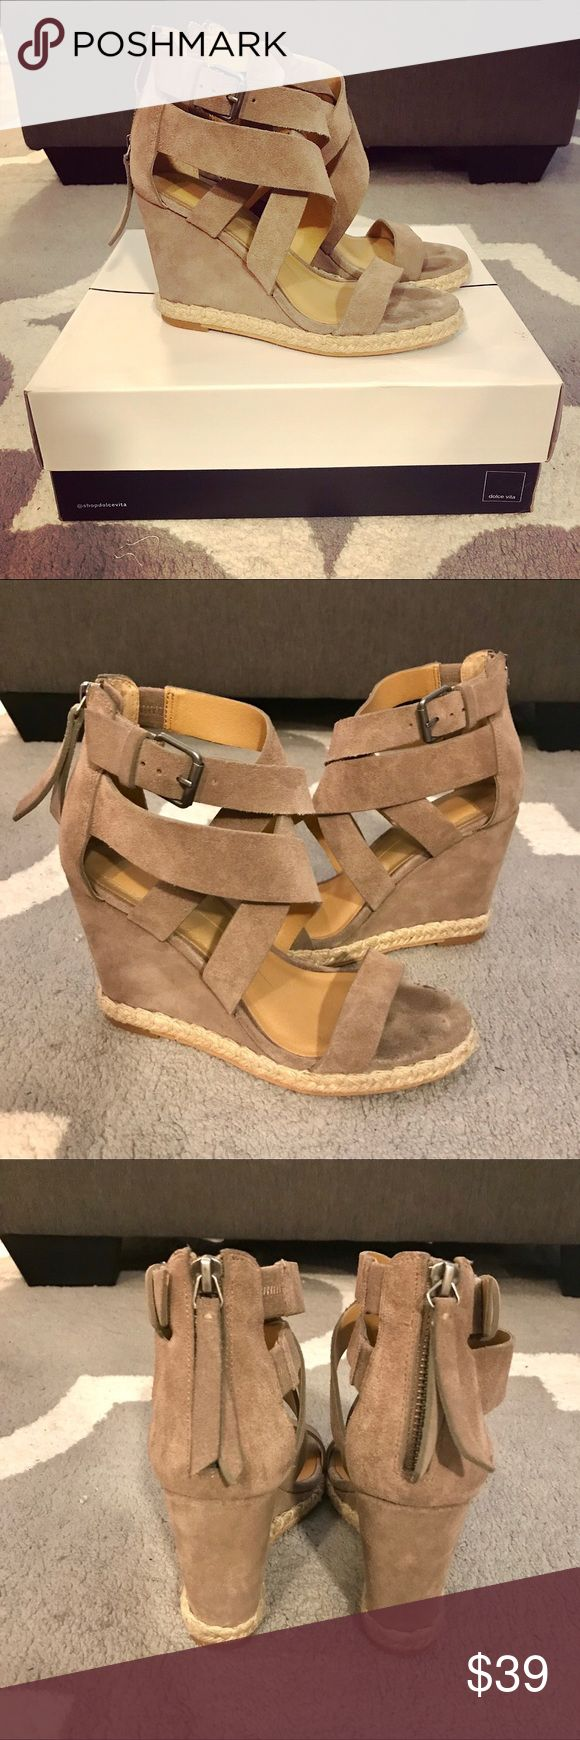 Dolce Vita Wedge Sandals Cute wedge sandals in a great neutral color and comfy heel. Convenient zip up back. Dolce Vita Shoes Wedges